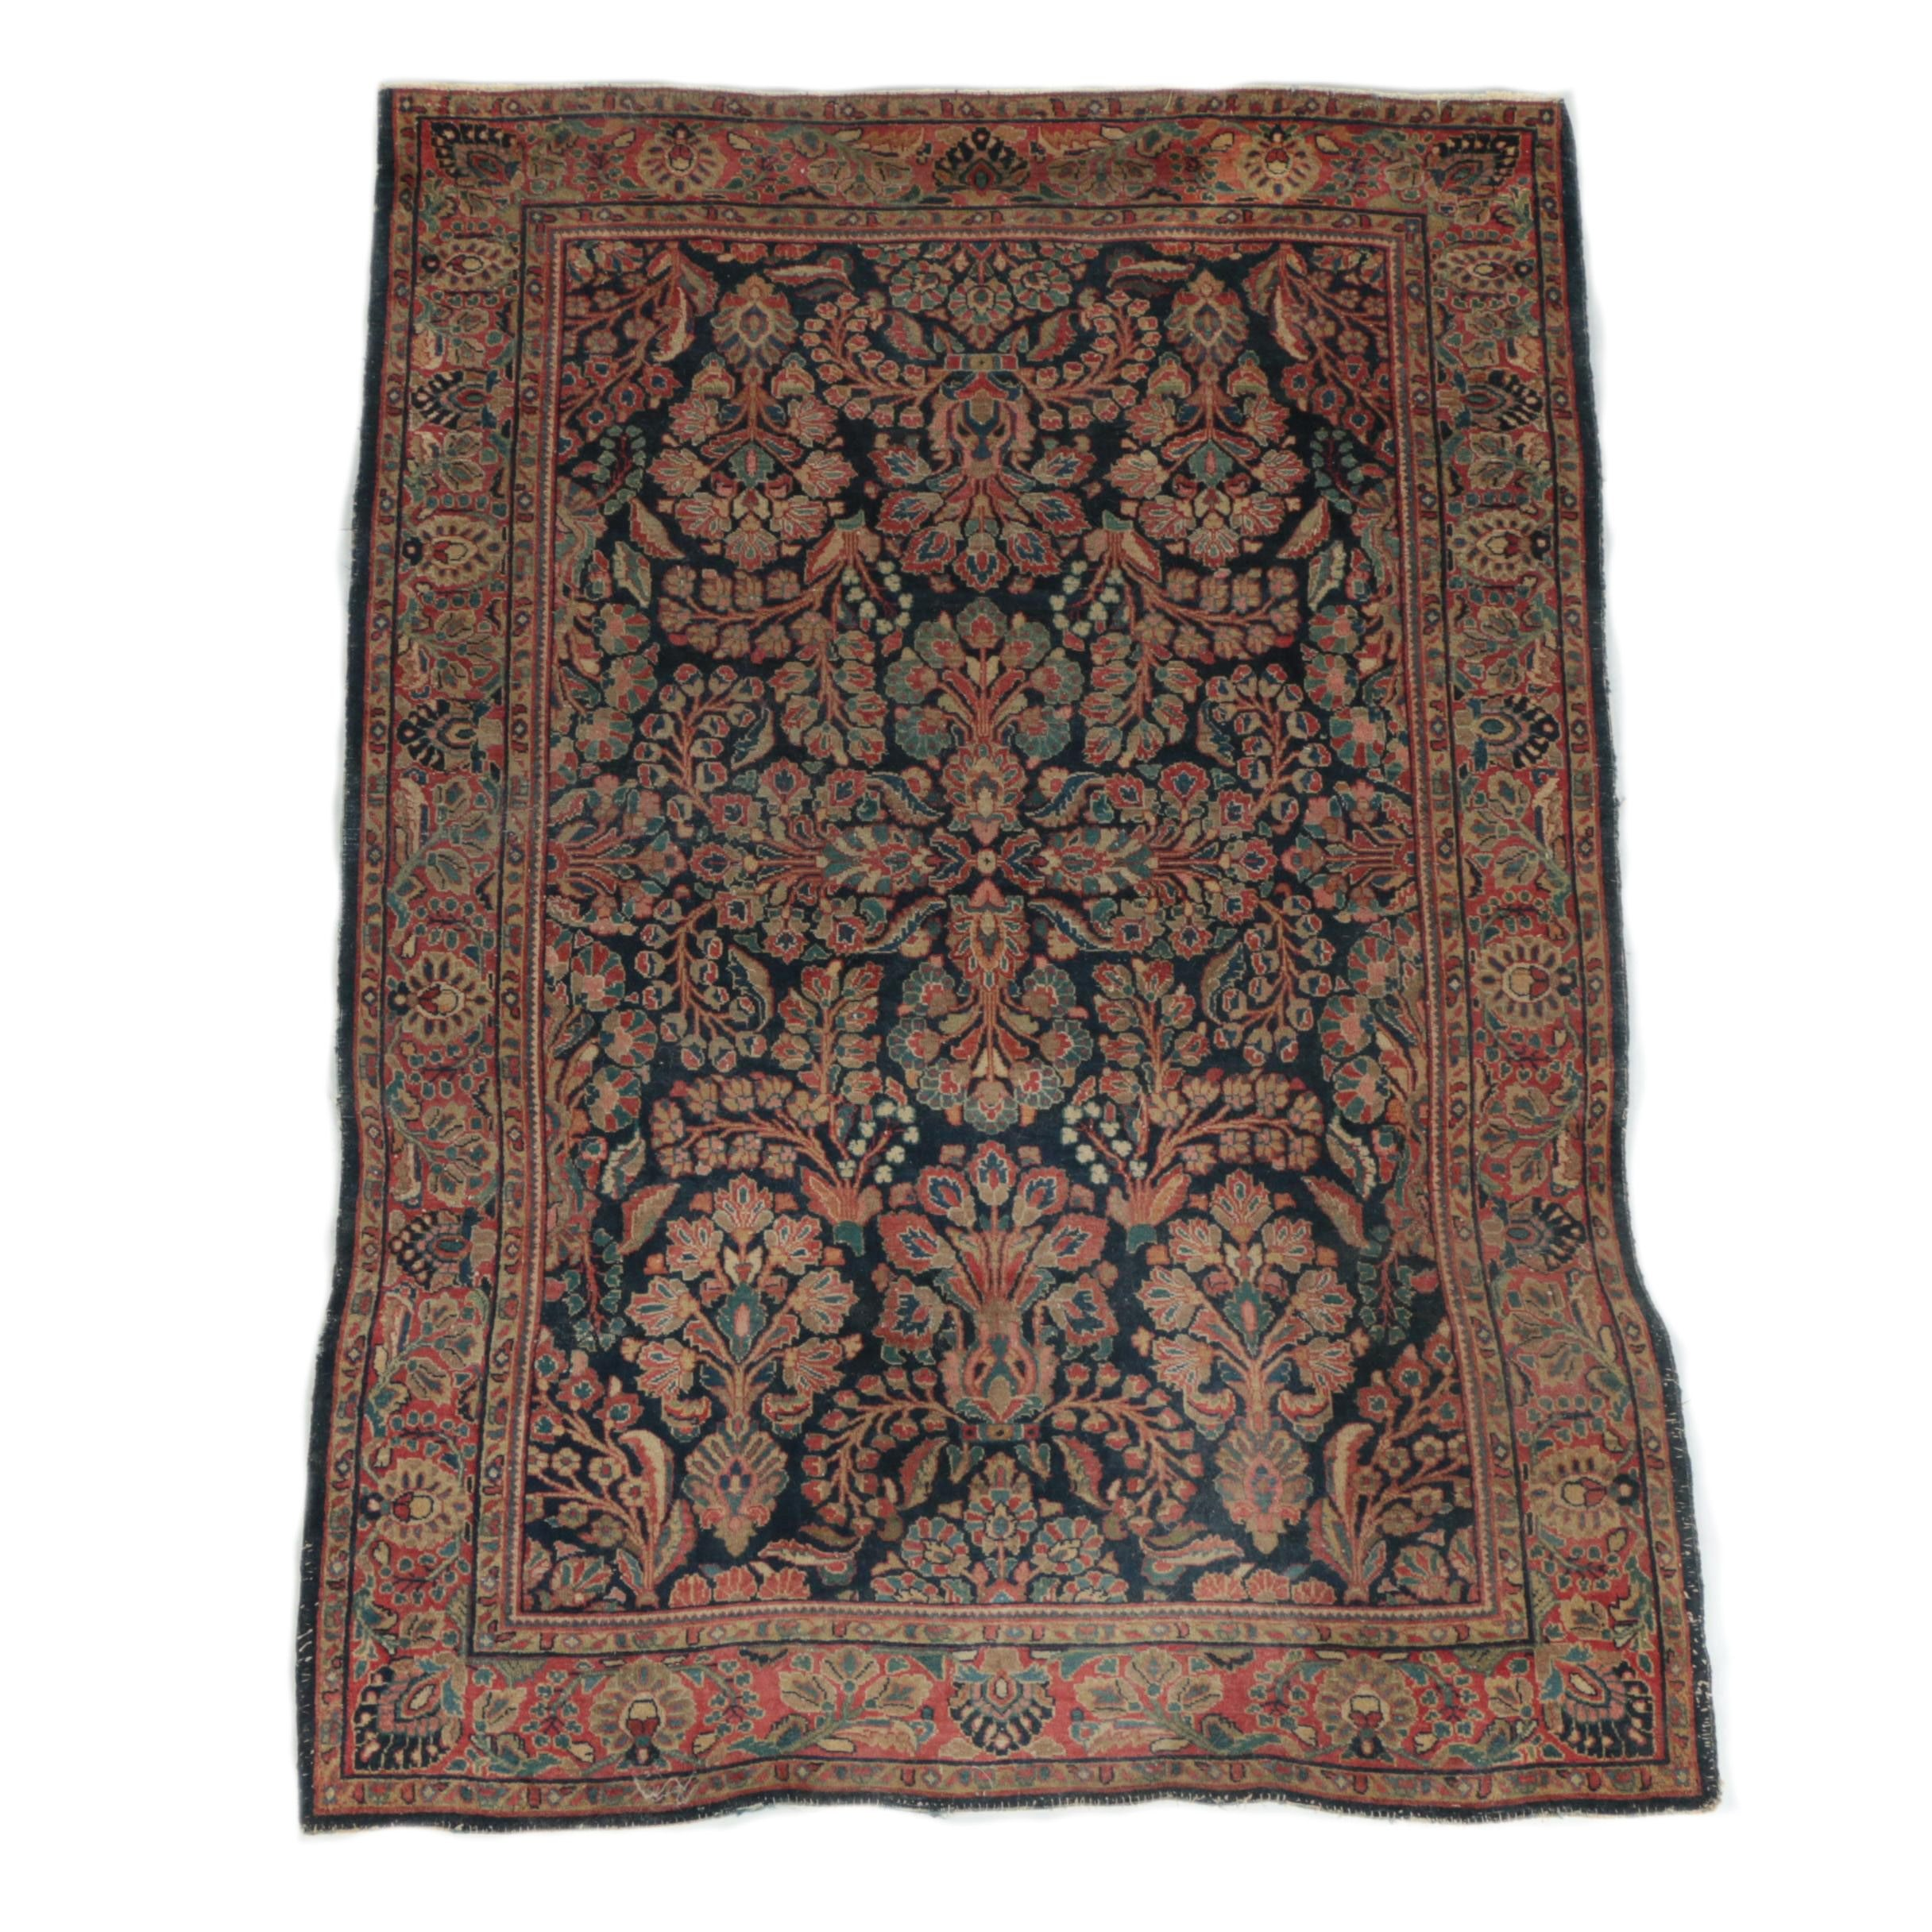 Vintage to Semi-Antique Hand-Knotted Persian Sarouk Wool Area Rug